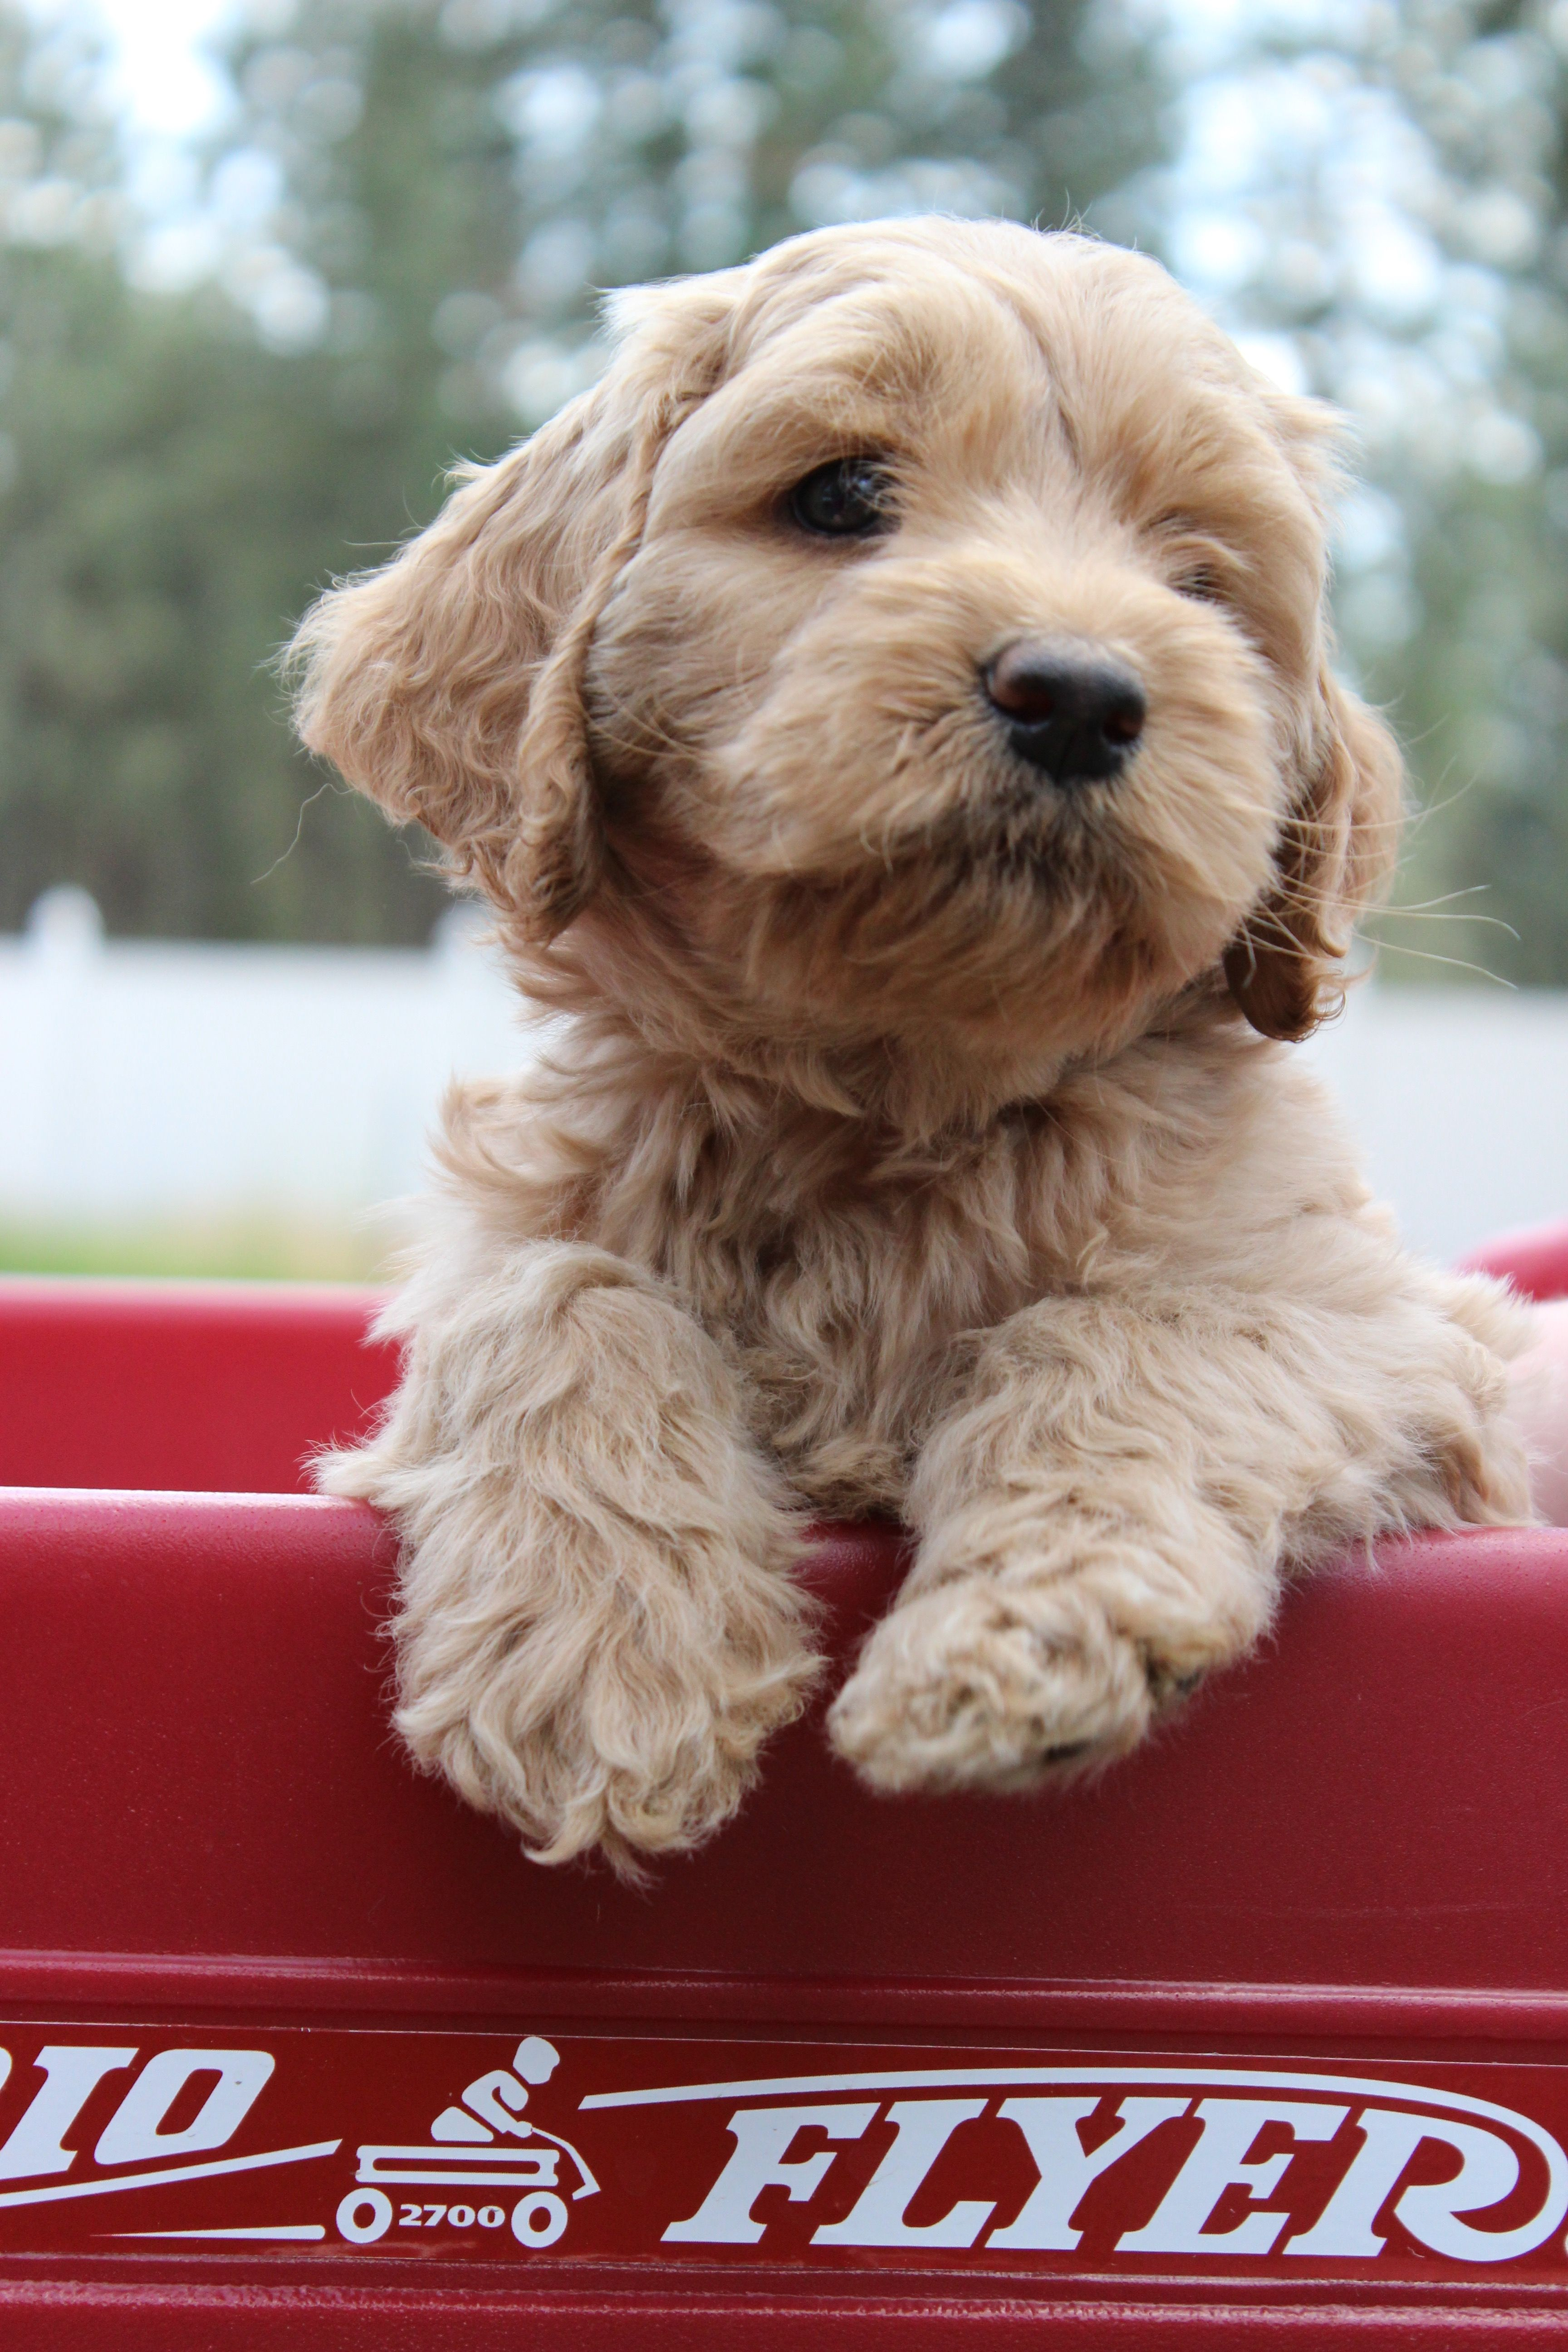 Labradoodle Puppy From High Country Labradoodles Labradoodle Puppy Labradoodle Goldendoodle Puppy